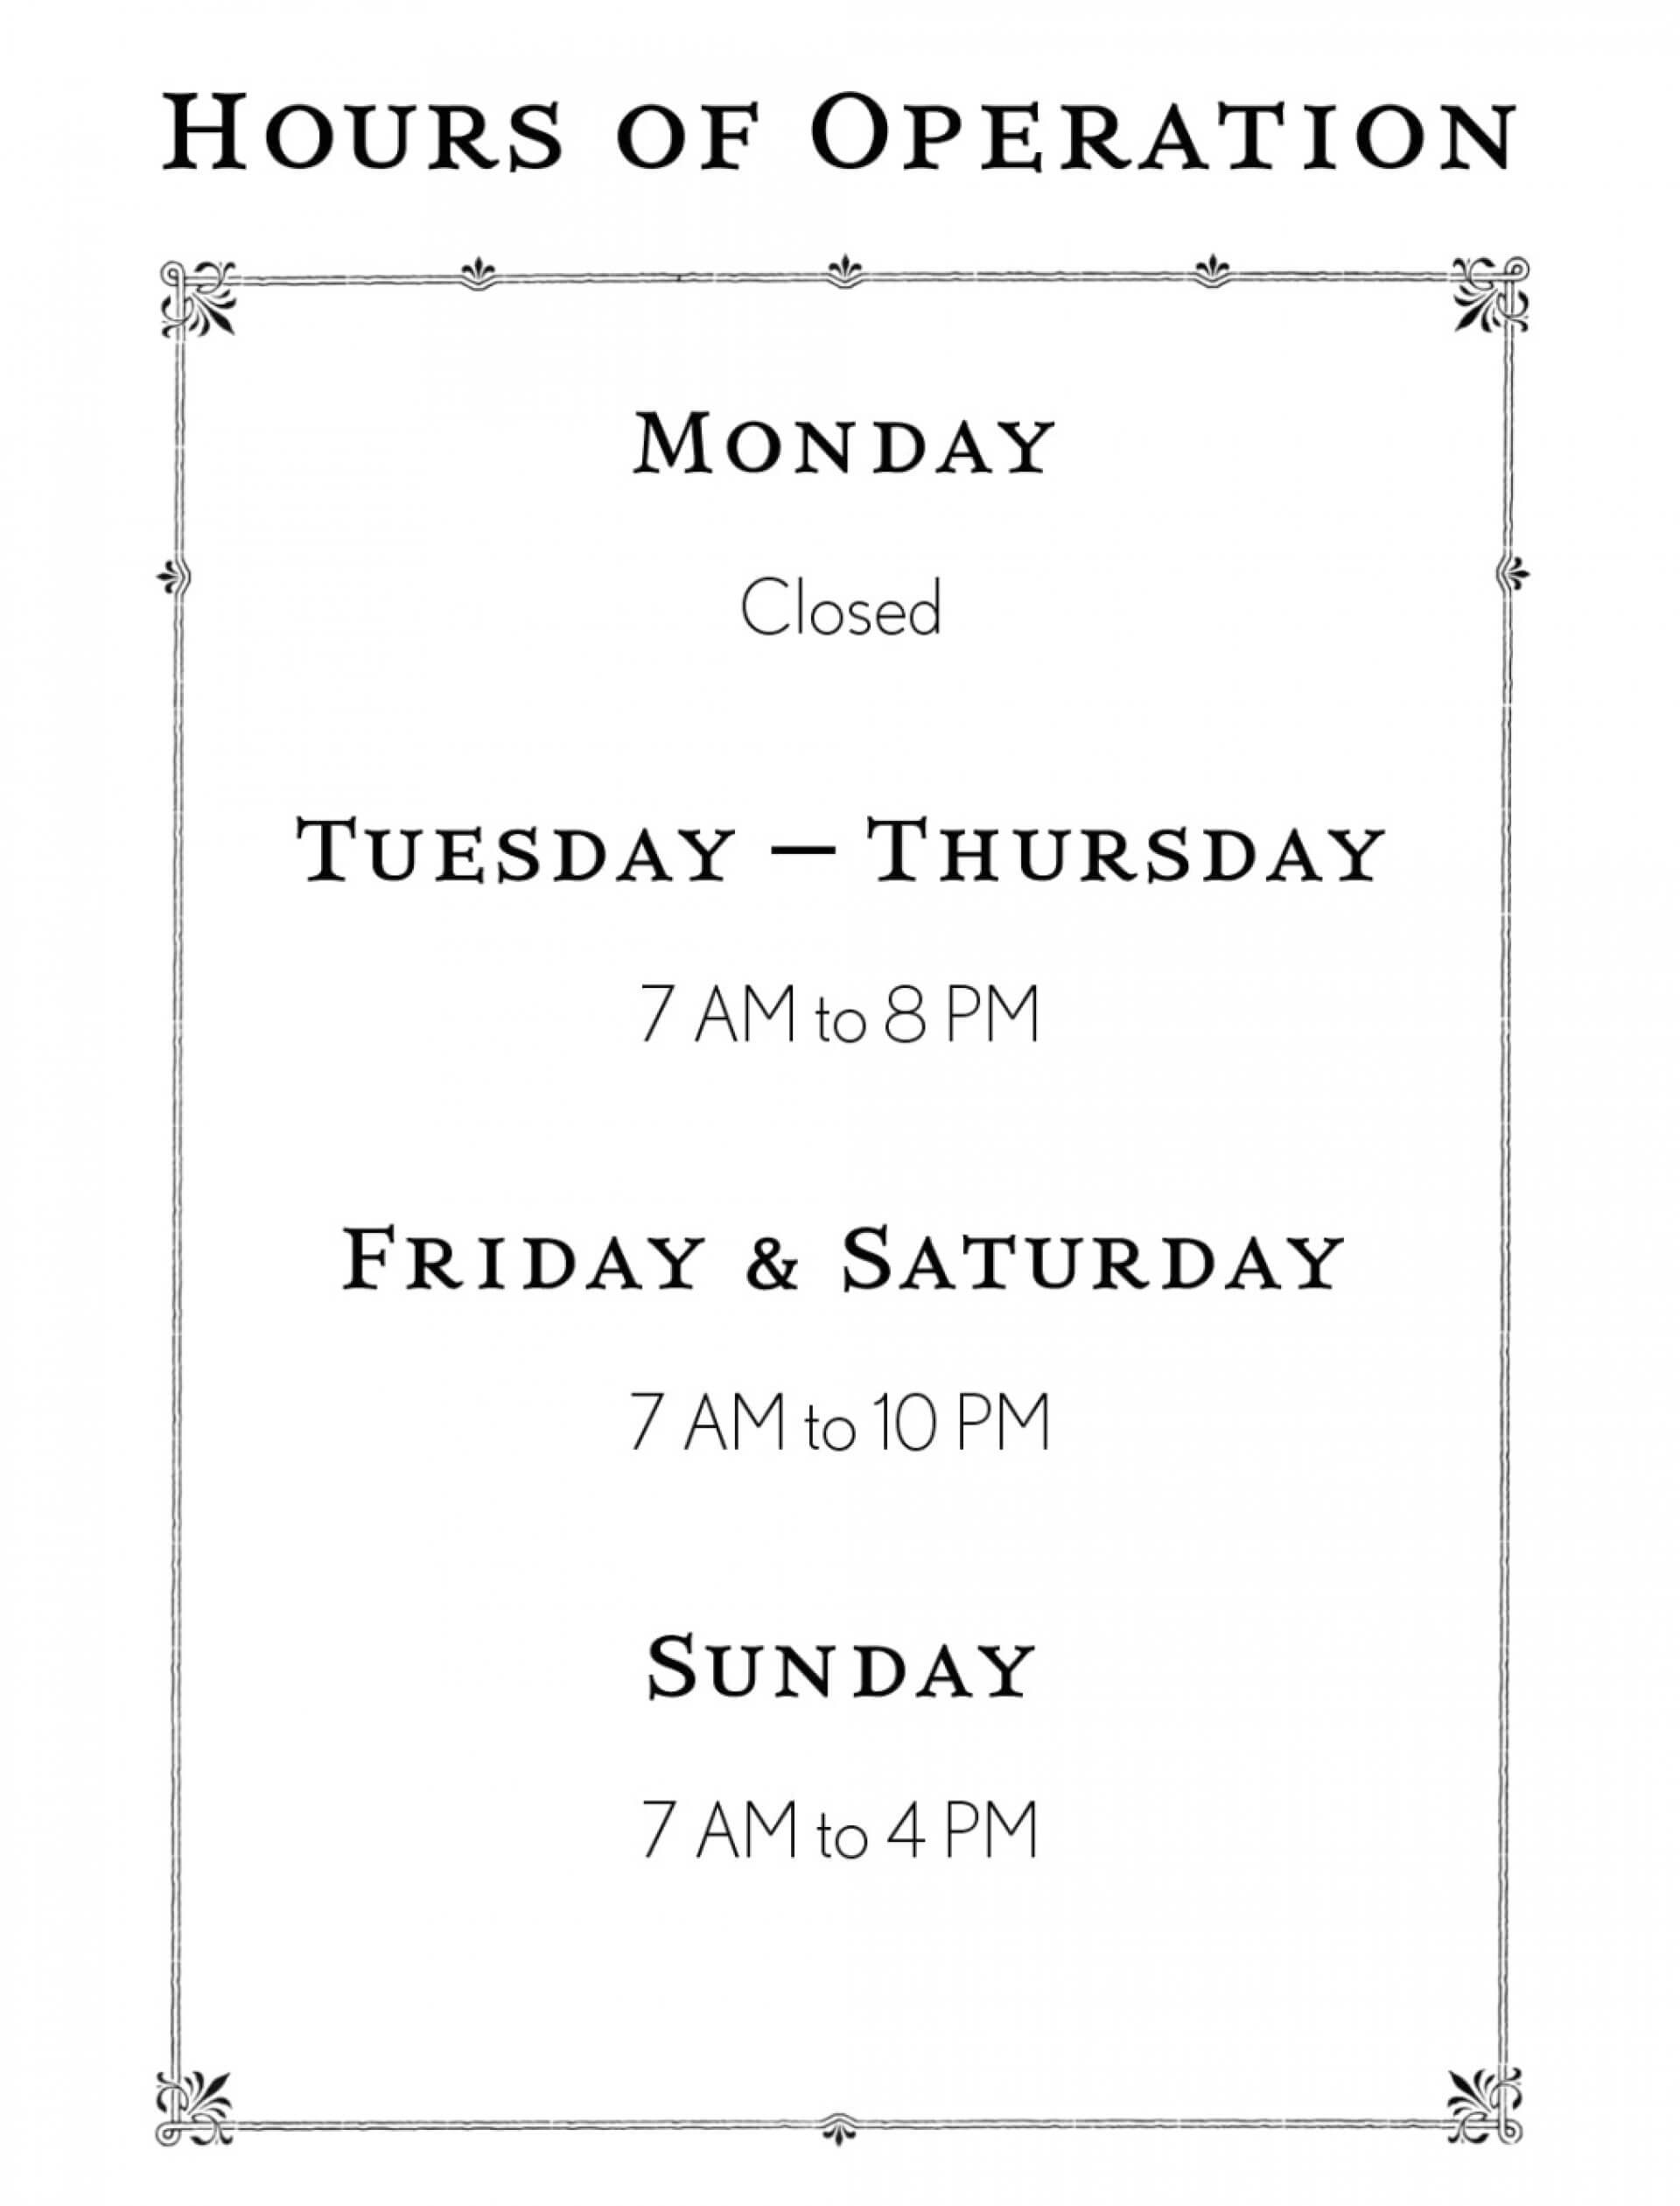 002 Business Hours Template Microsoft Word Ideas Fascinating With Regard To Hours Of Operation Template Microsoft Word